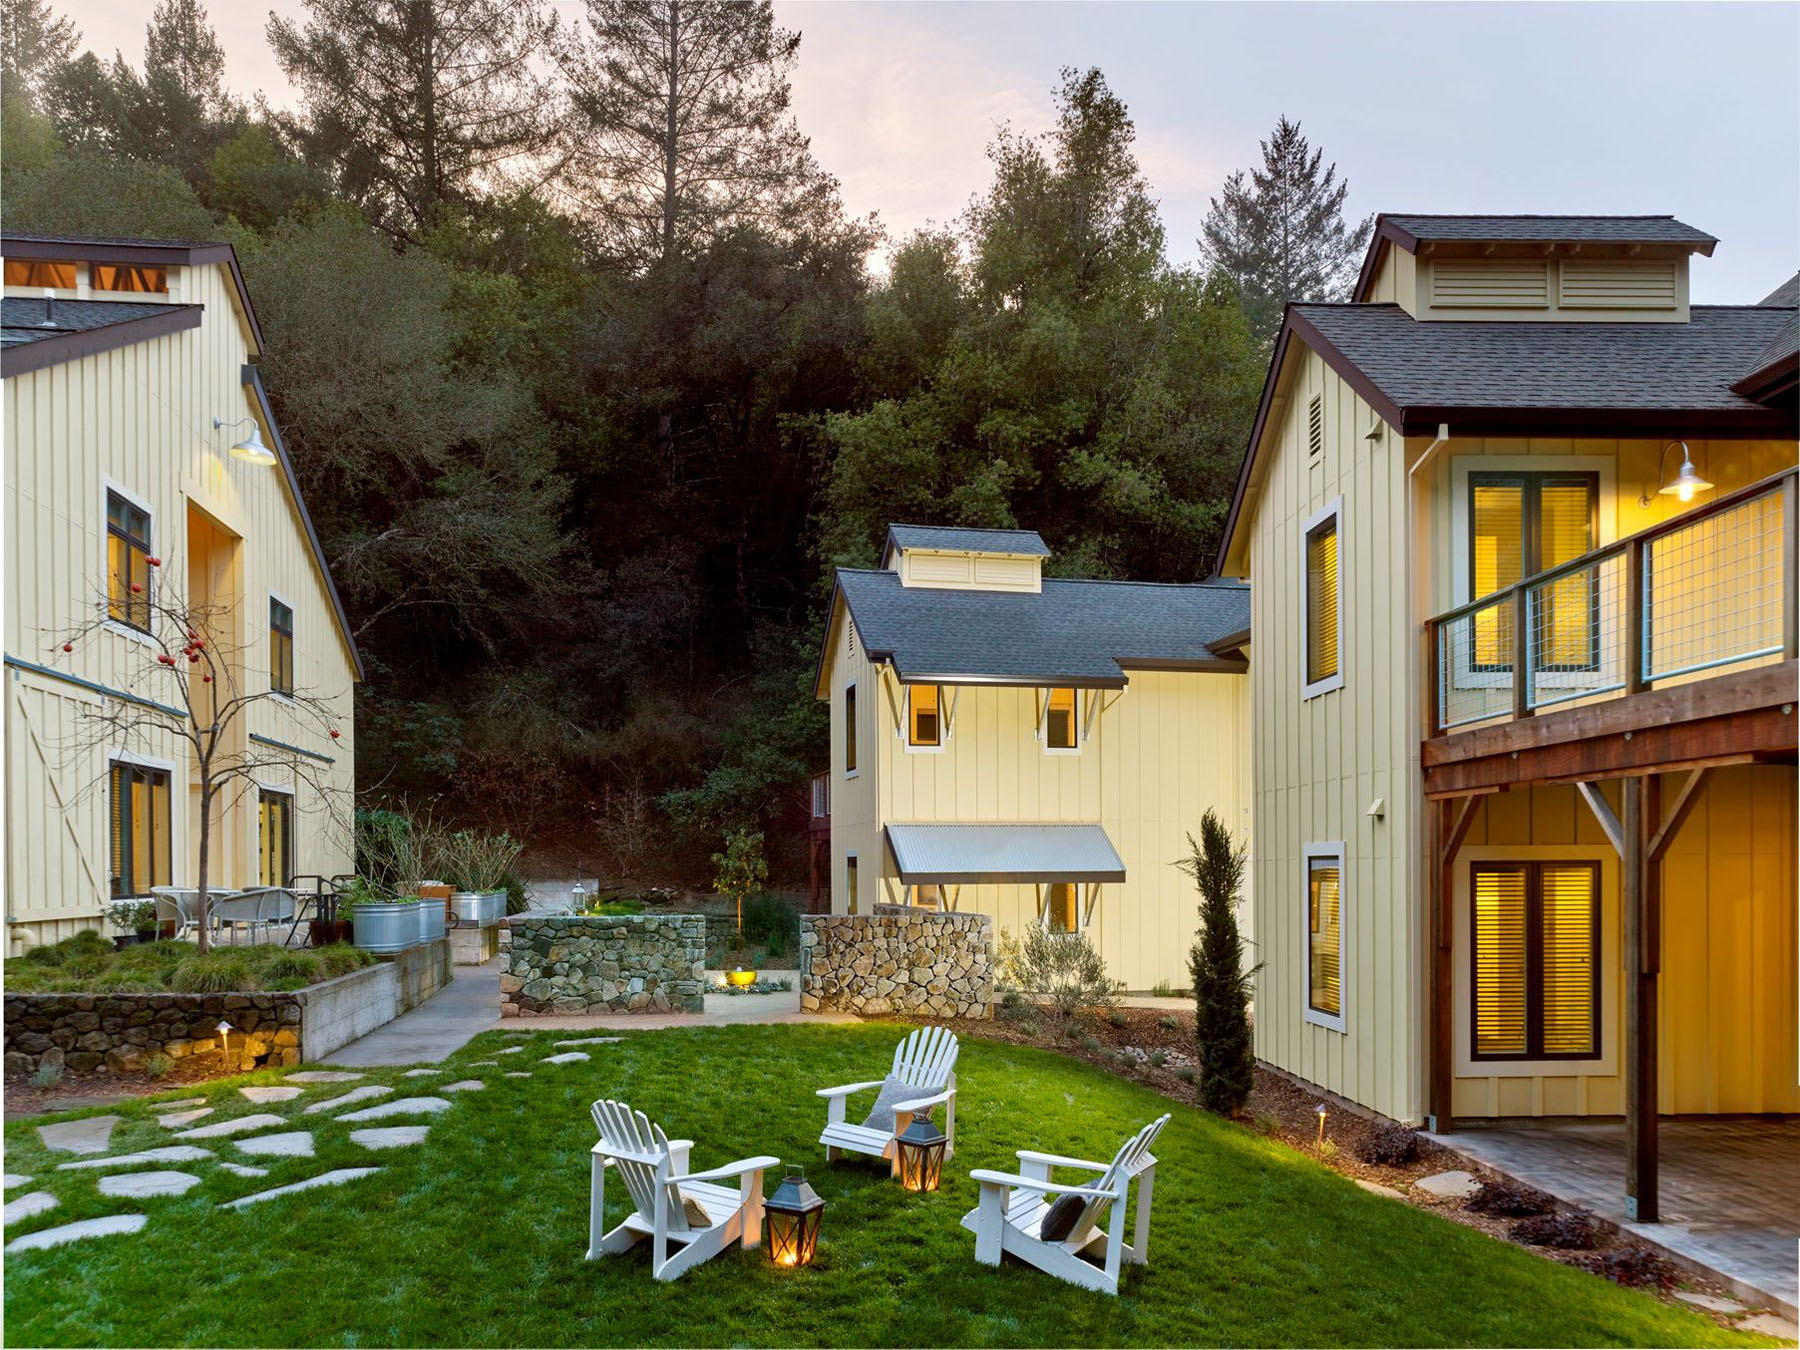 Farmhouse Inn A Romantic Boutique Hotel In California Wine Country